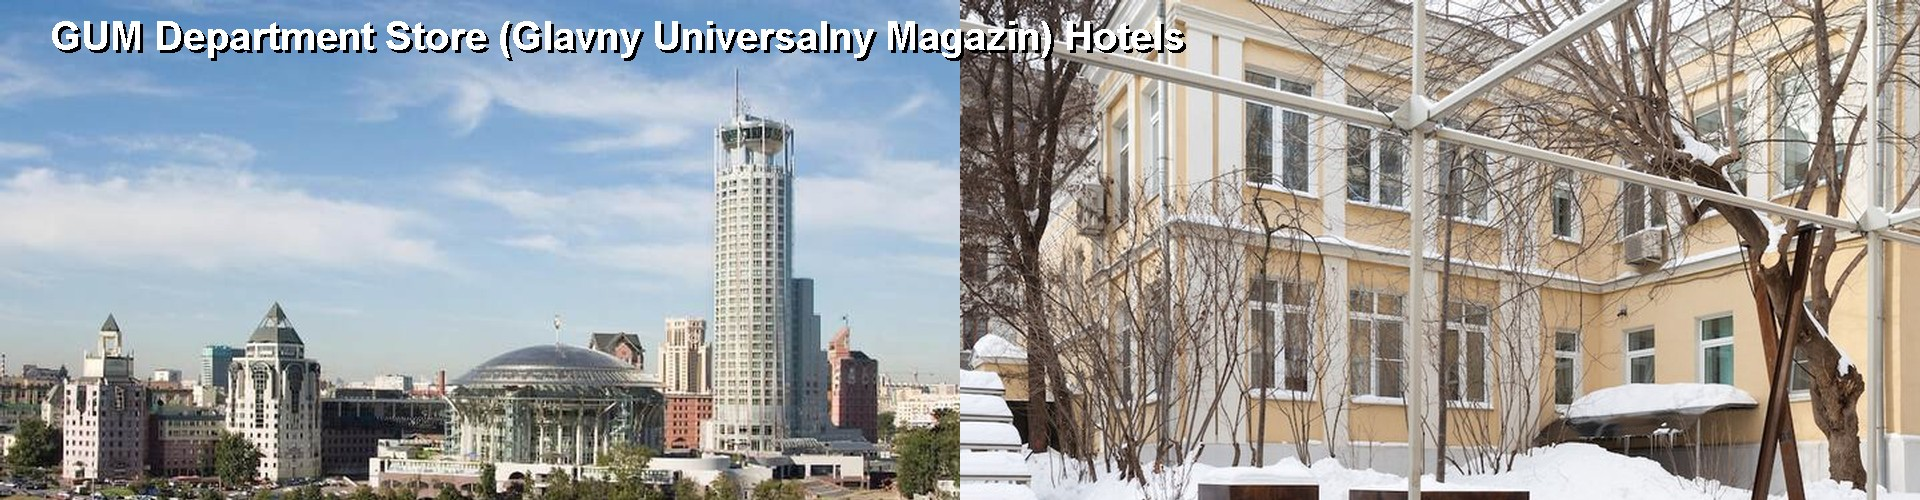 5 Best Hotels near GUM Department Store (Glavny Universalny Magazin)